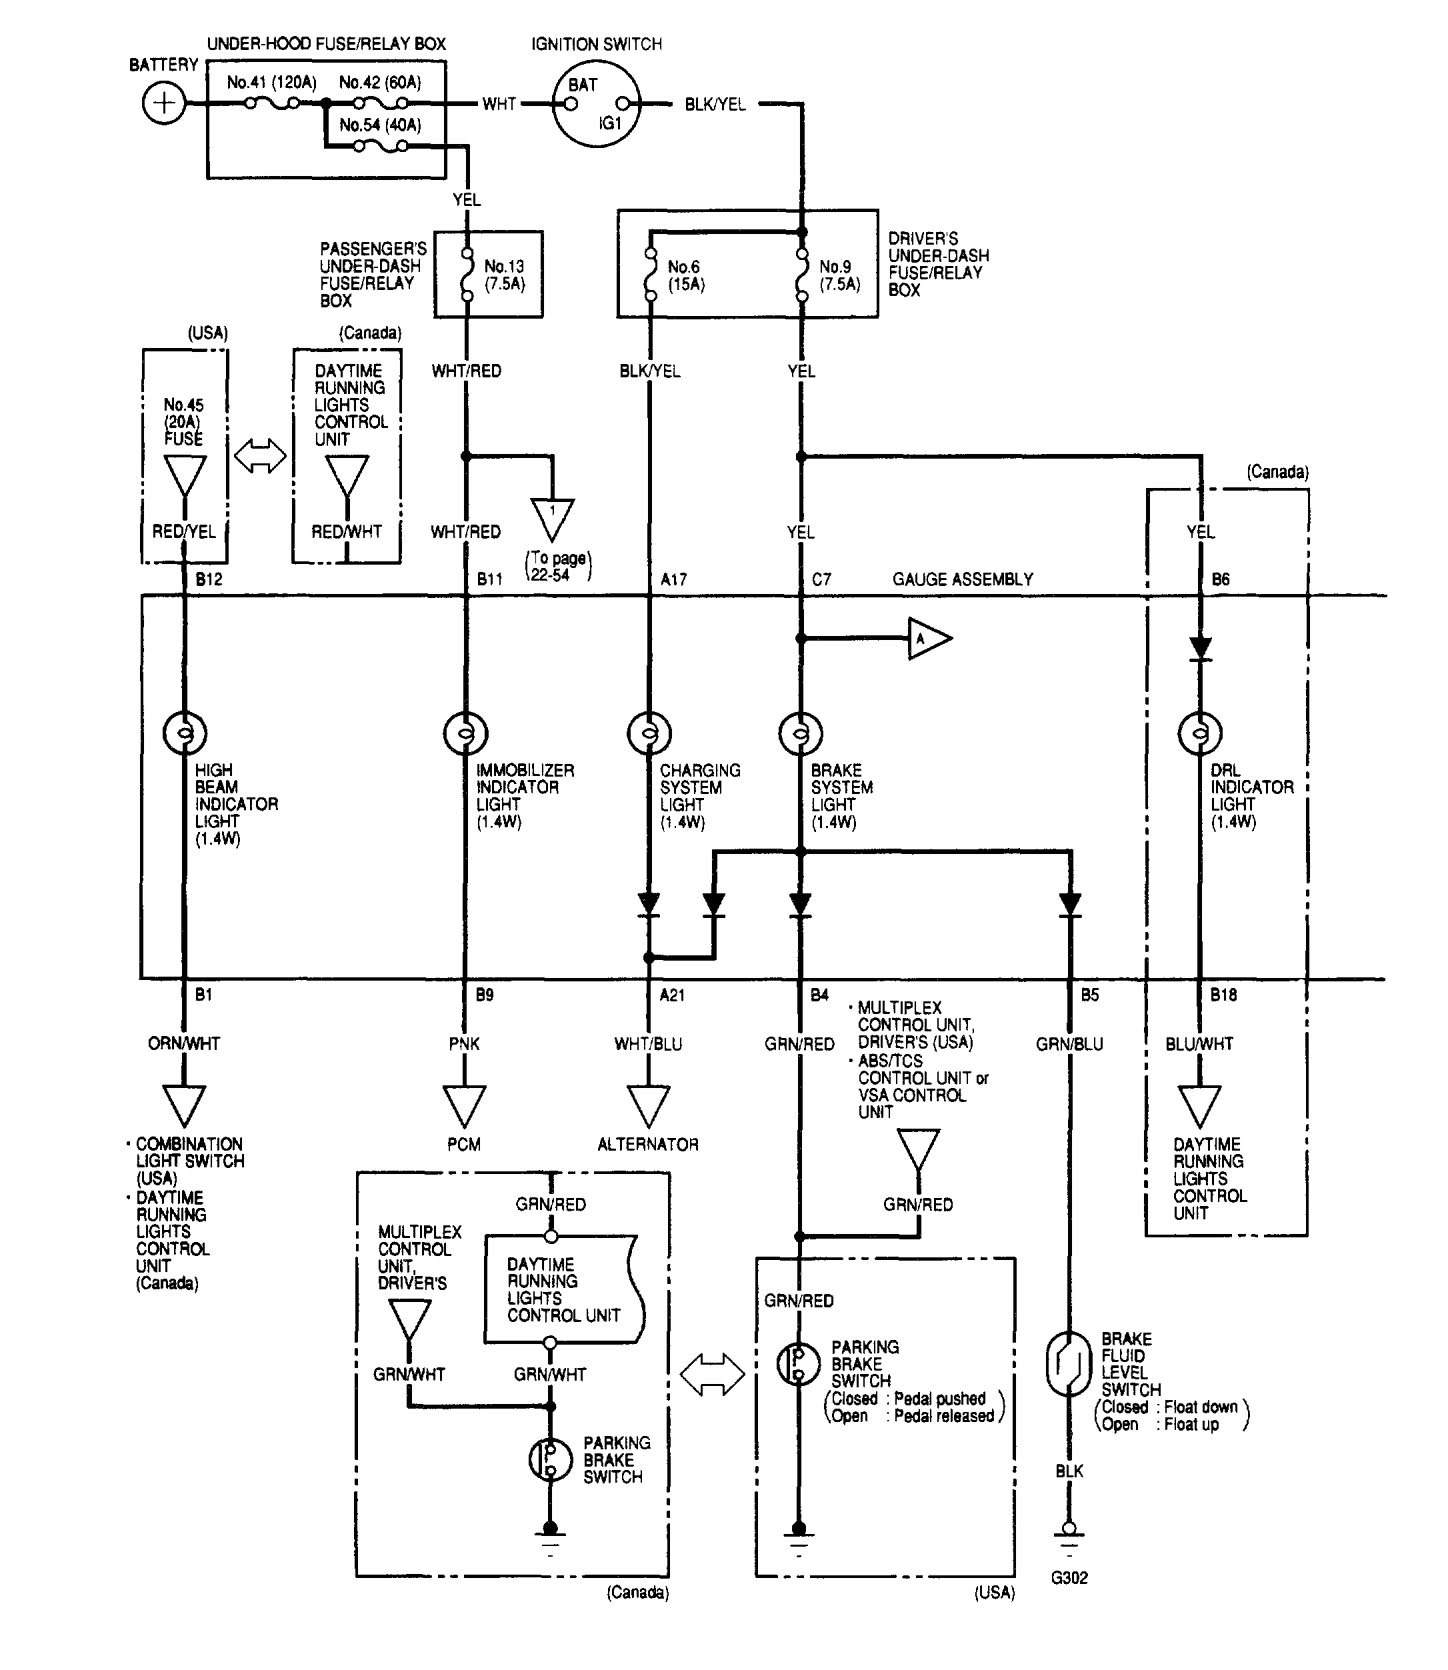 Acura TL (2002) - wiring diagrams - instrumentation - Carknowledge.infoCarknowledge.info